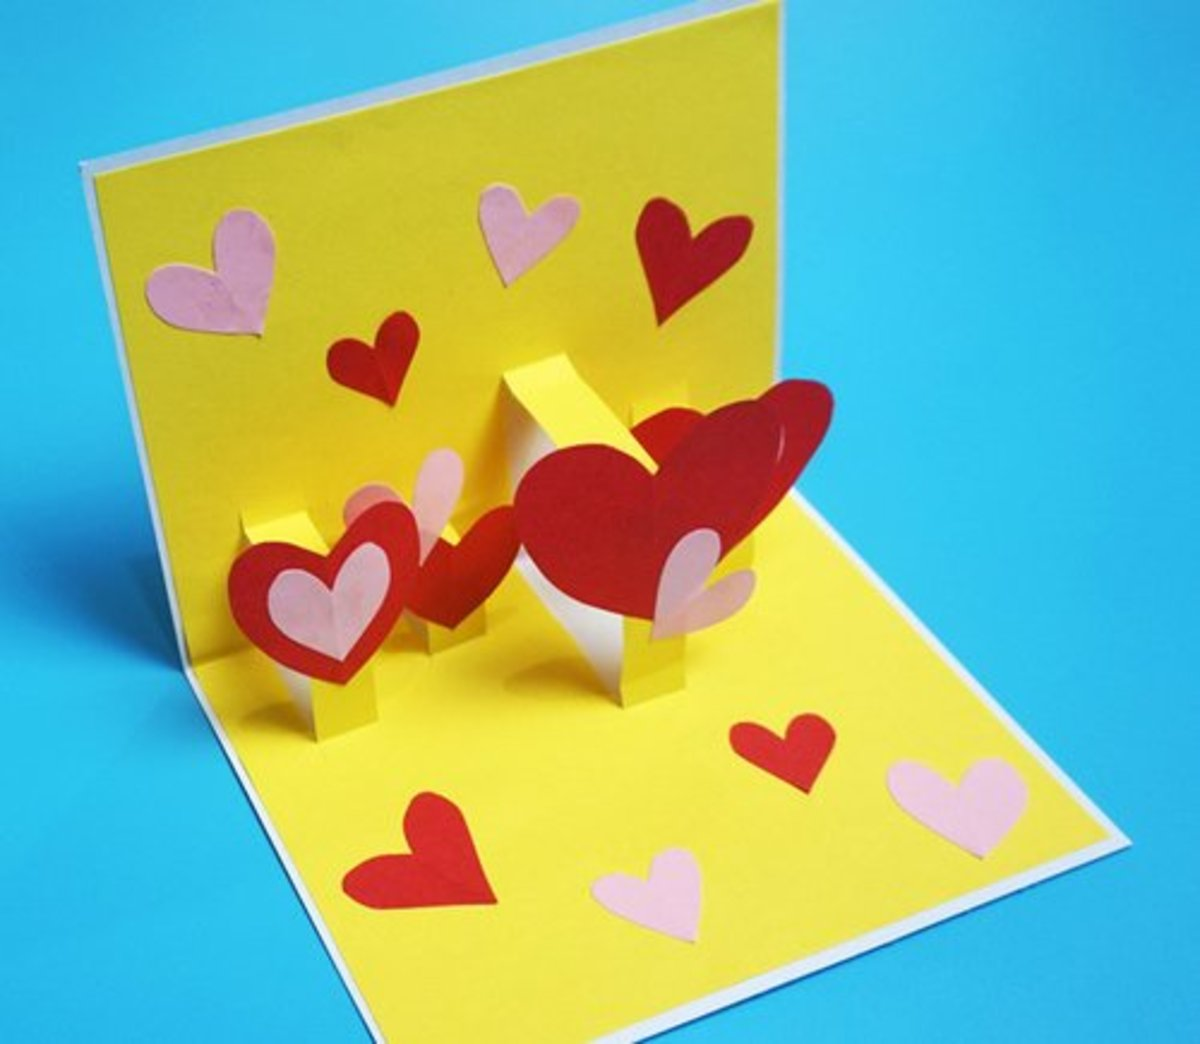 36 DIY Ideas for Making Pop-Up Cards